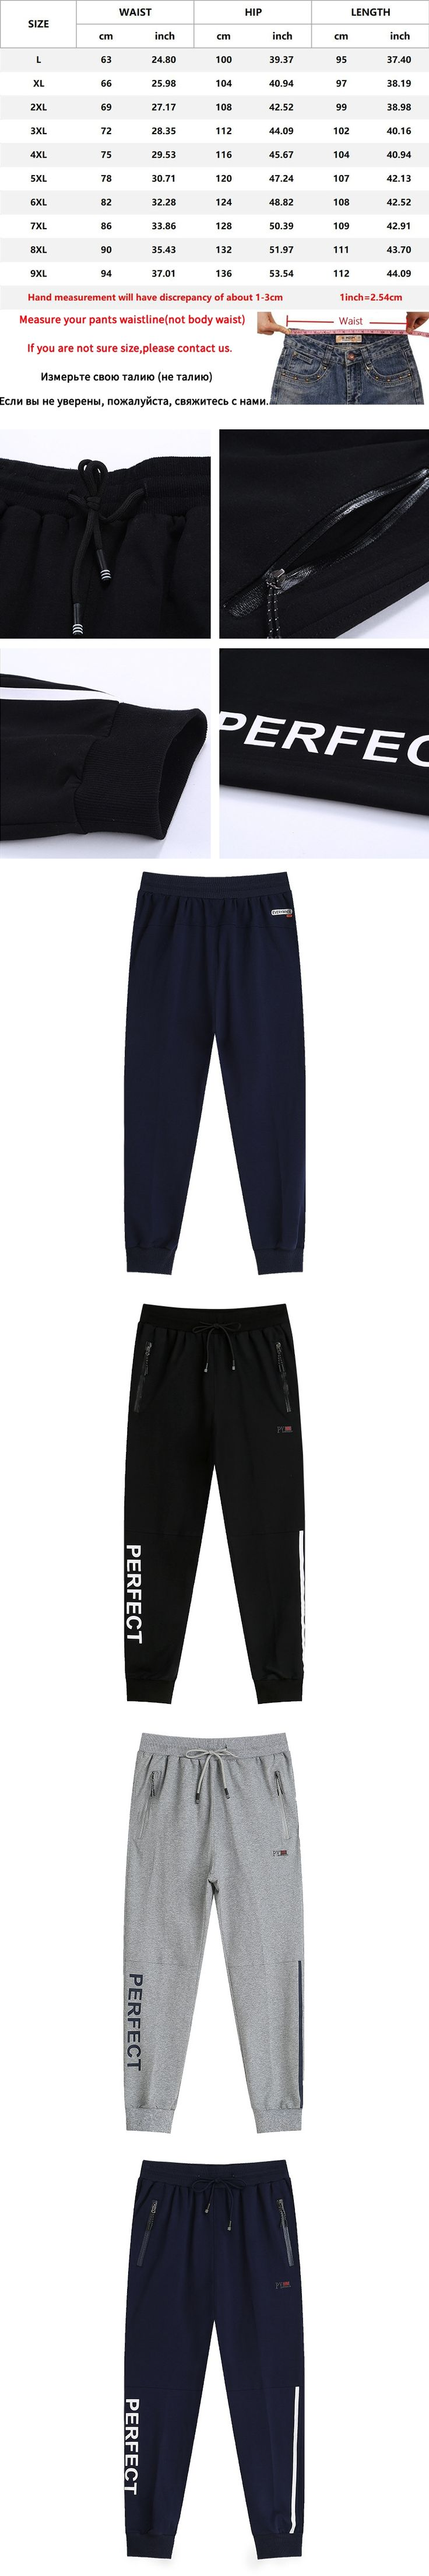 L-9XL Men Cotton Thin Sweatpants Spring Autumn Big Size Male Casual Letter Loose Elastic Straight Tracksuit Baggy Trousers CF199